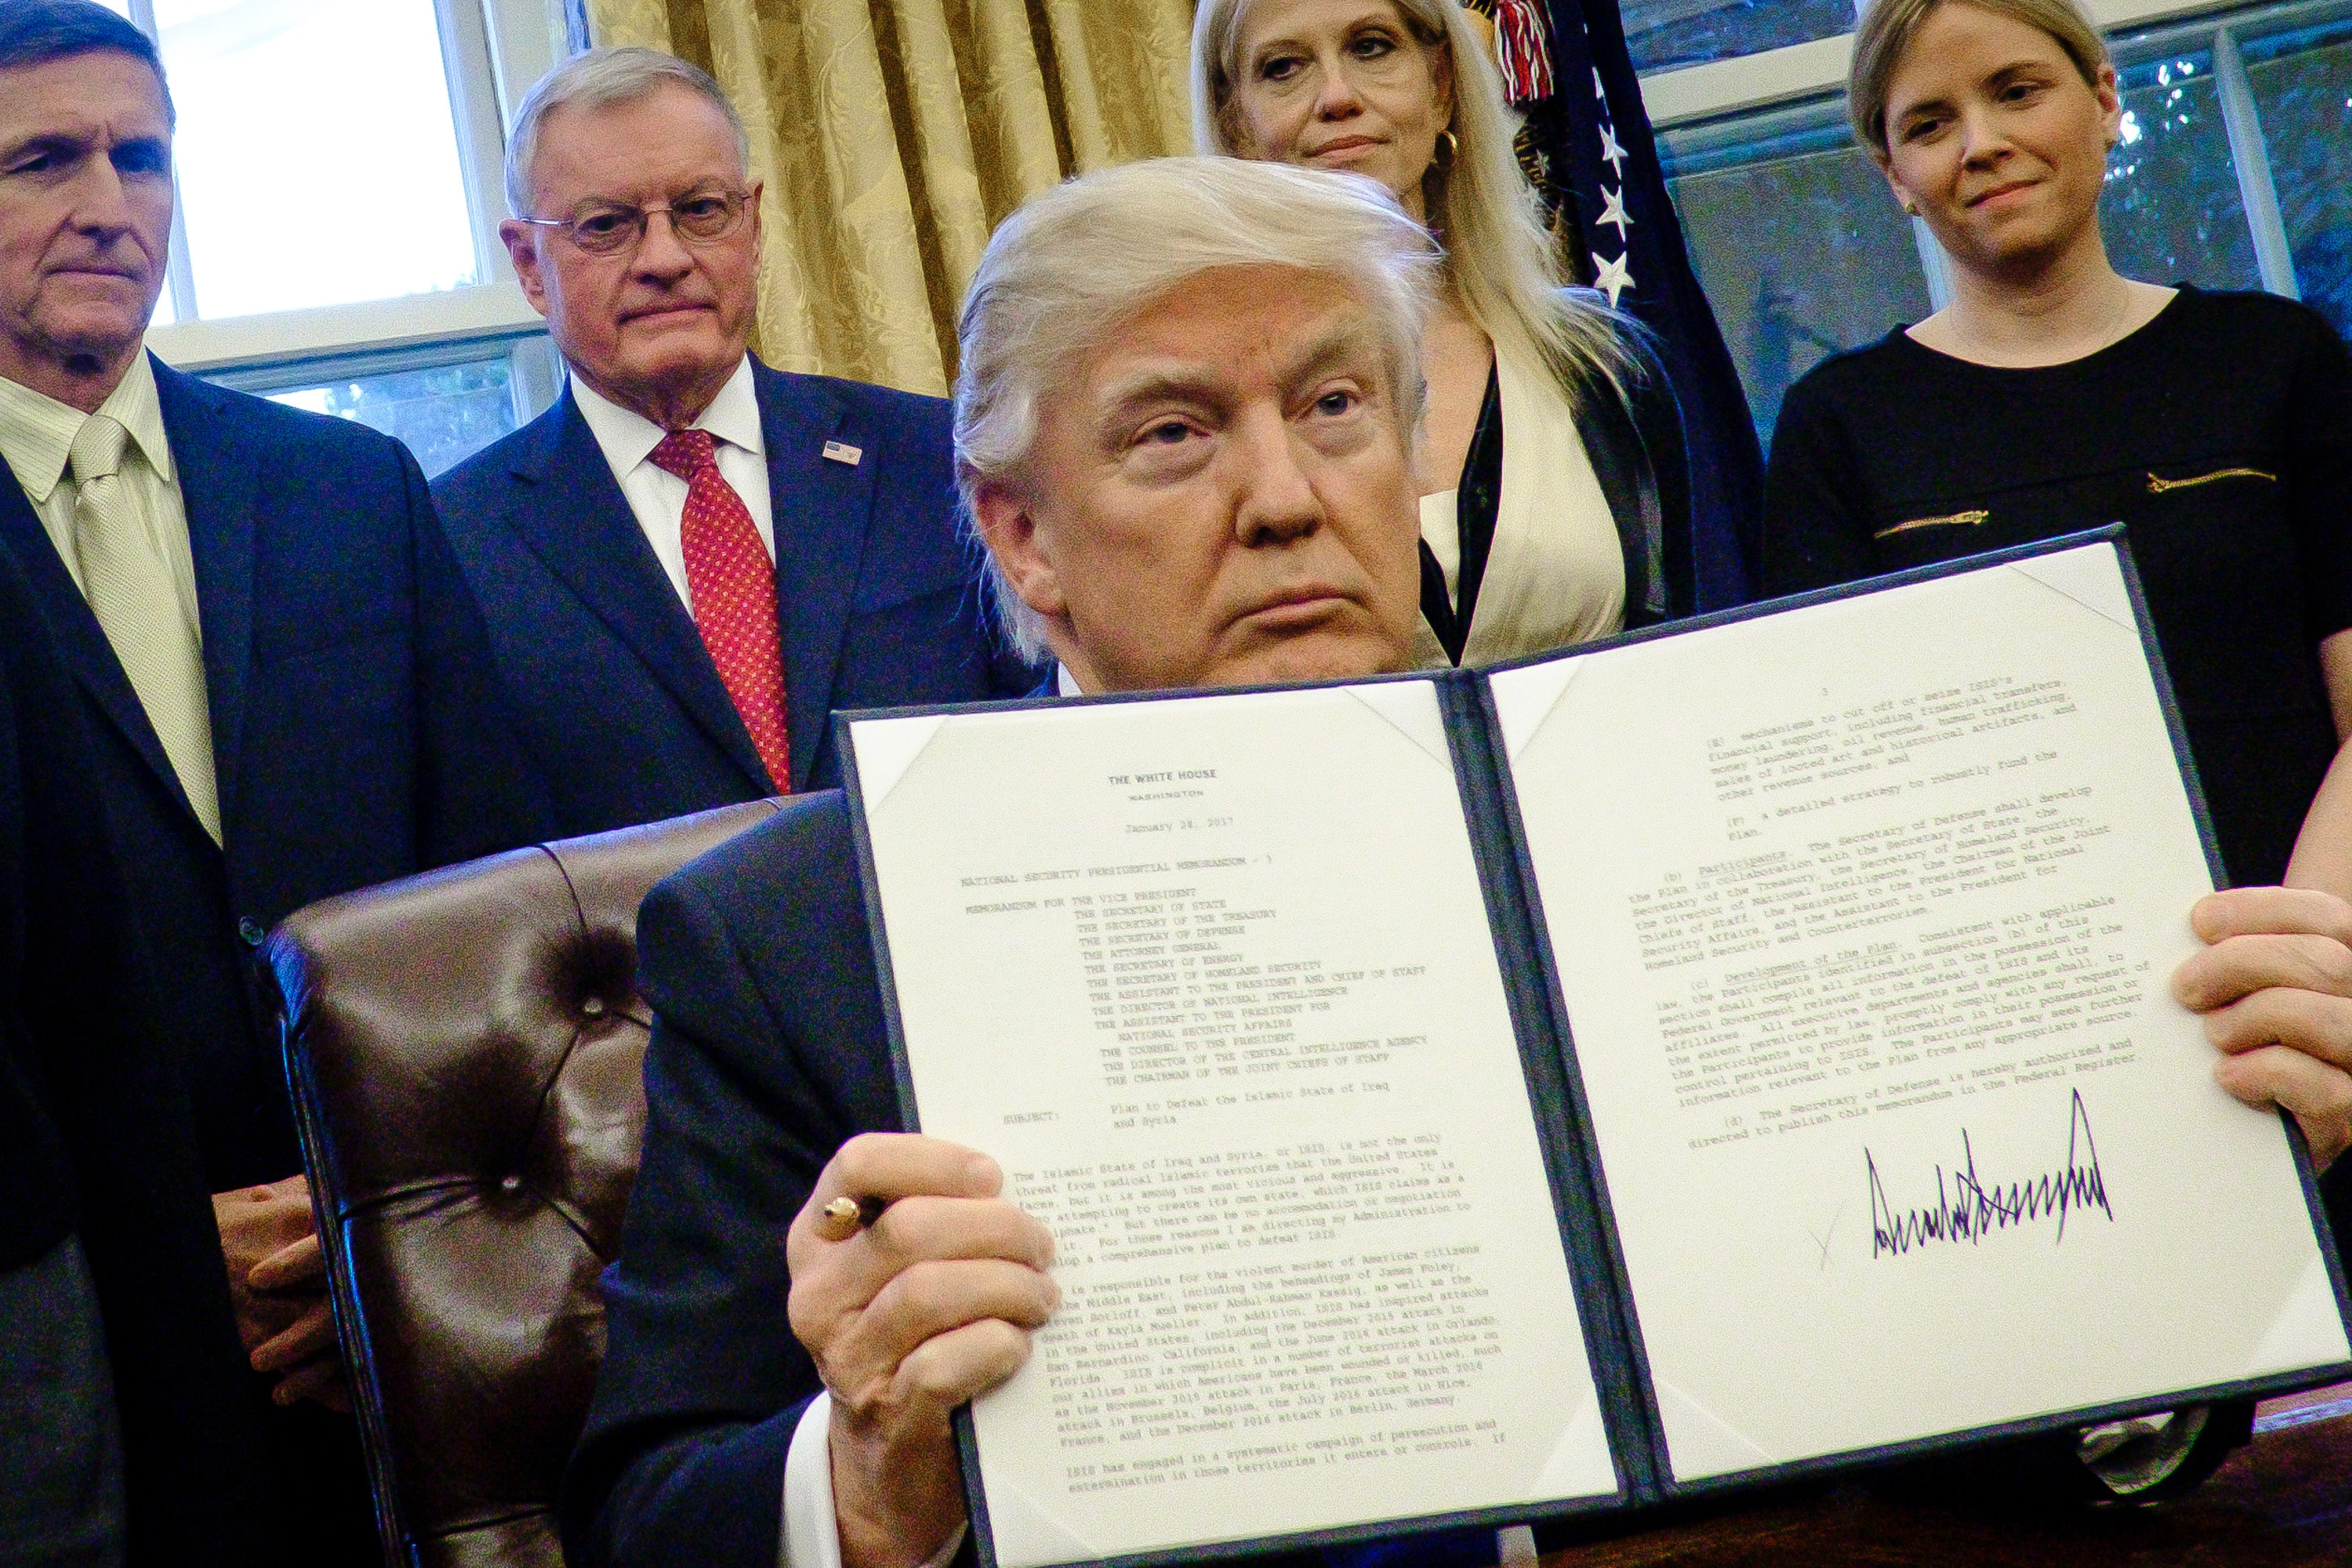 632935736?w=740&h=444&fit=crop&crop=faces&auto=format&fm=jpg&q=70 25 donald trump executive order memes to help you through an,Trump Executive Order Meme Generator